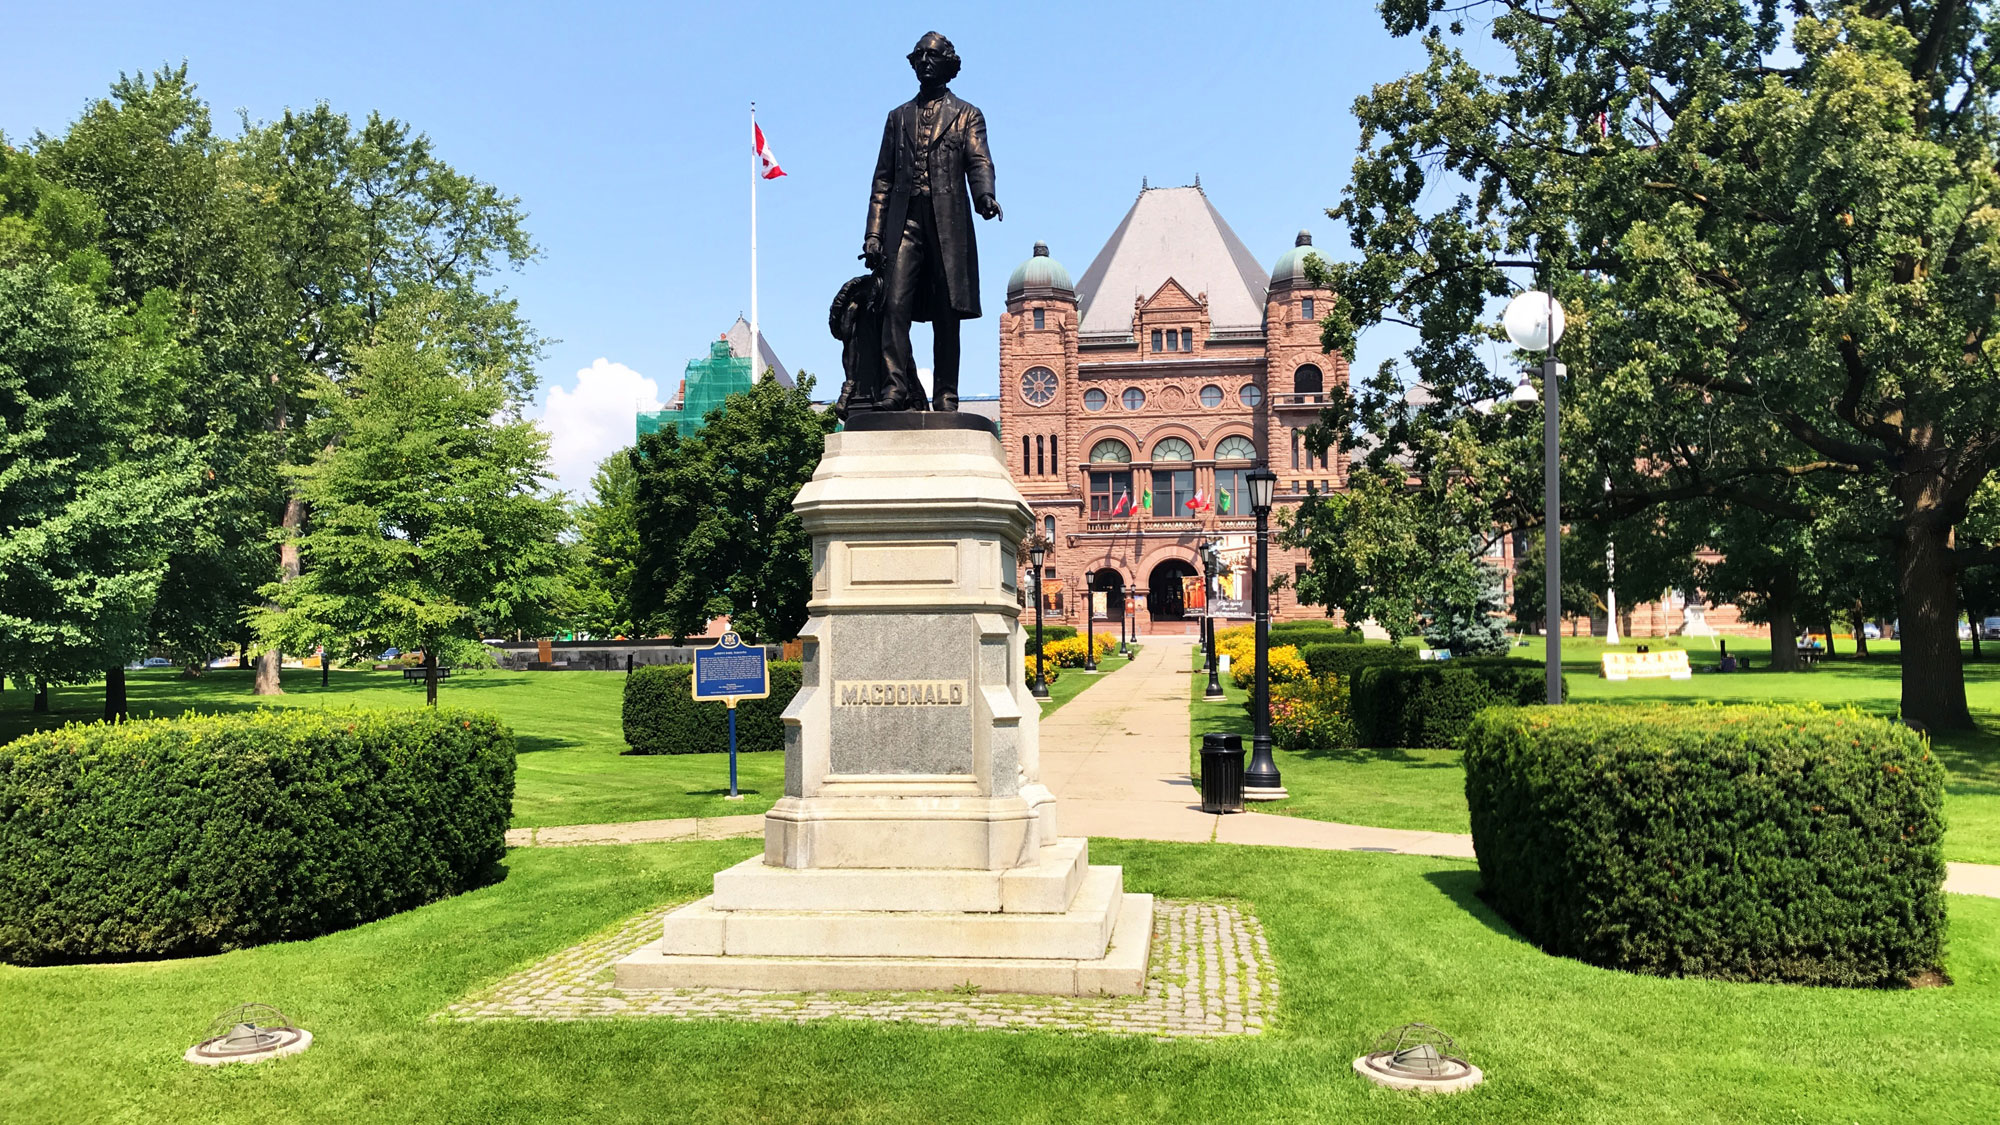 Plaque that replaced statue of John A. Macdonald vandalized